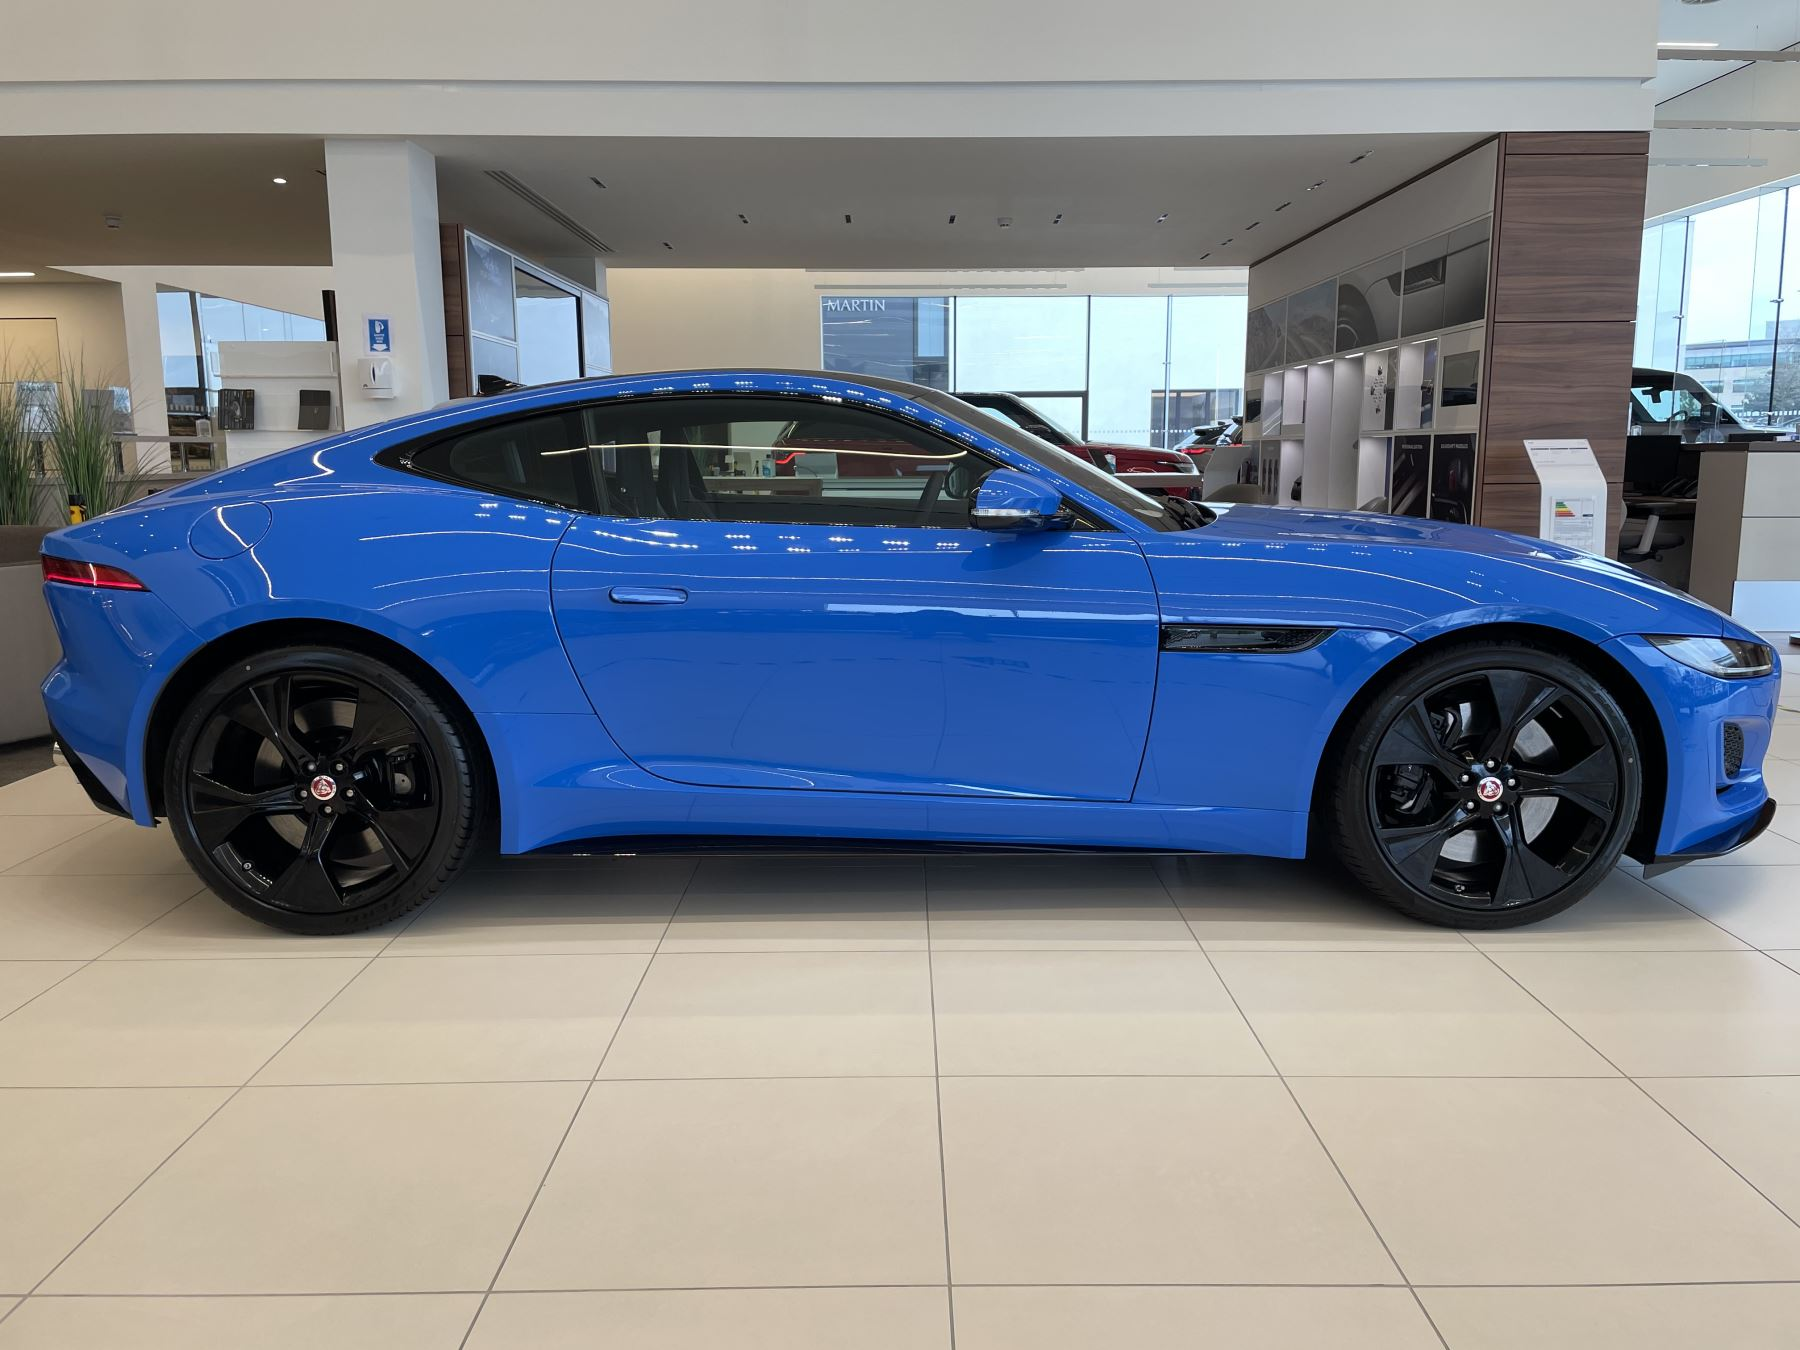 Jaguar F-TYPE 5.0 P450 Supercharged V8 Reims Edition 2dr Auto image 2